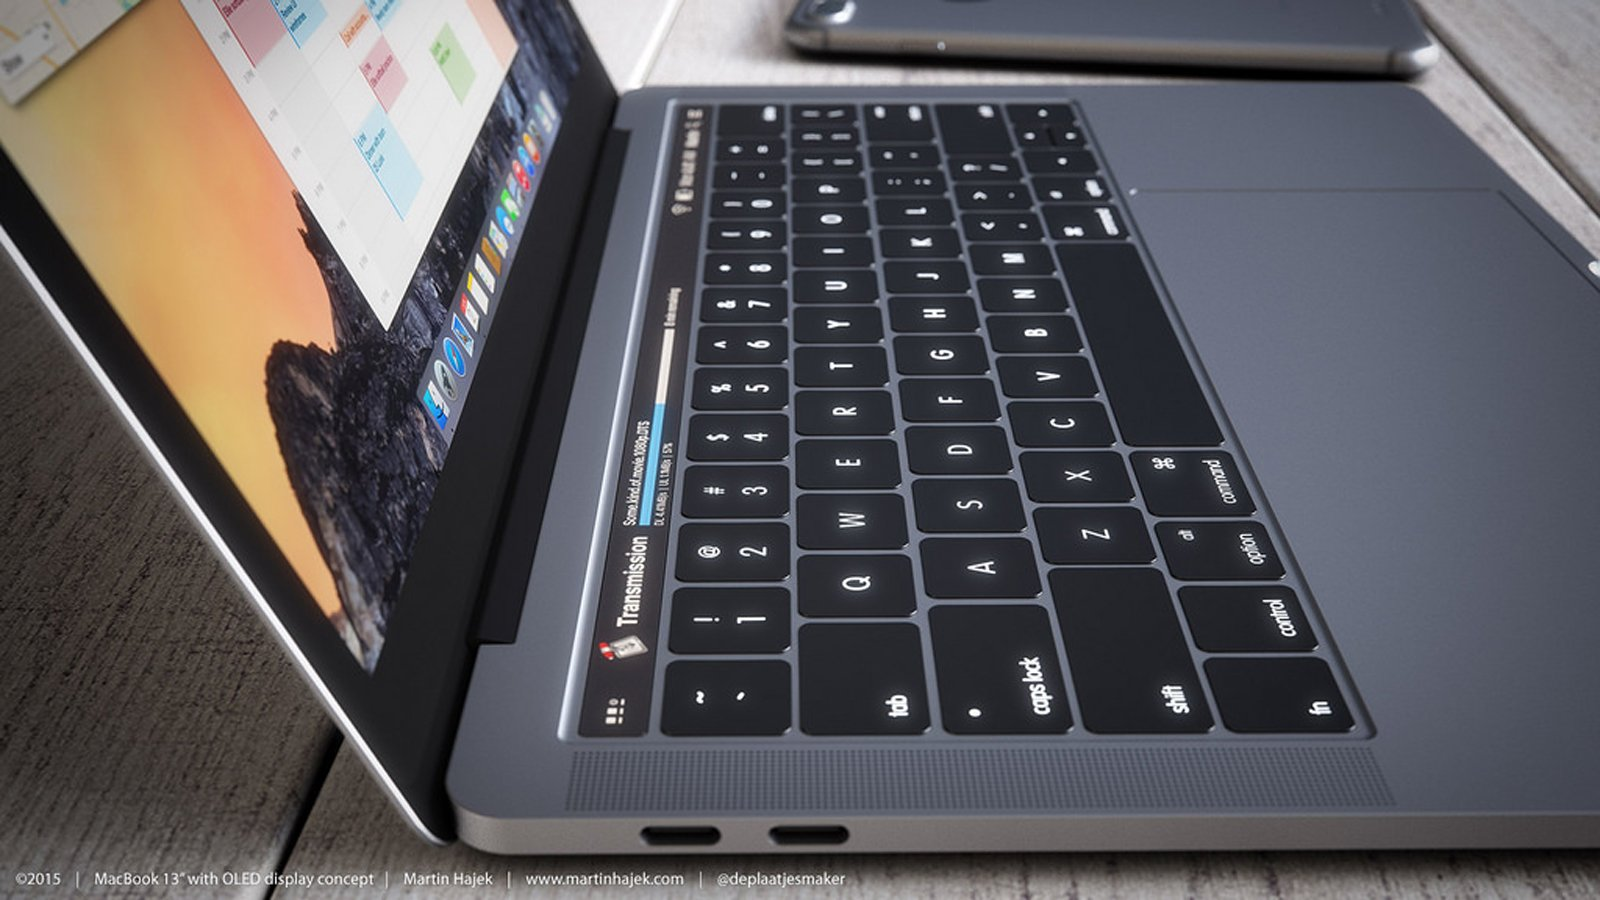 Martin Hajek's conceptual rendering of a MacBook Pro with an OLED touch strip